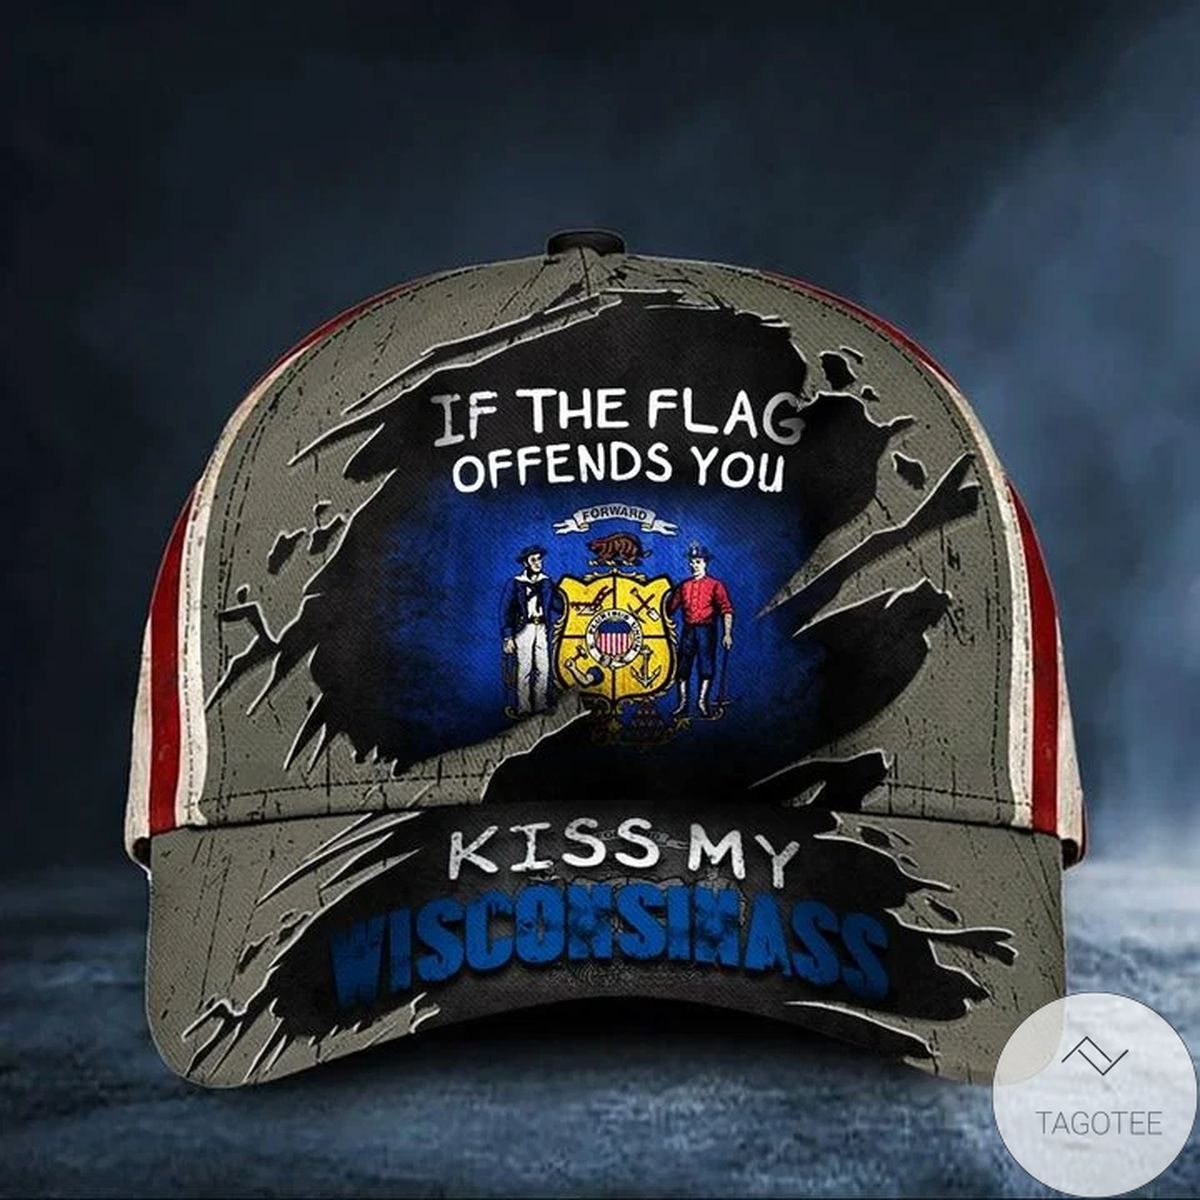 If The Flag Offends You Kiss My Wisconsinass Cap USA Flag Hat Funny Patriotic Wisconsin Merch